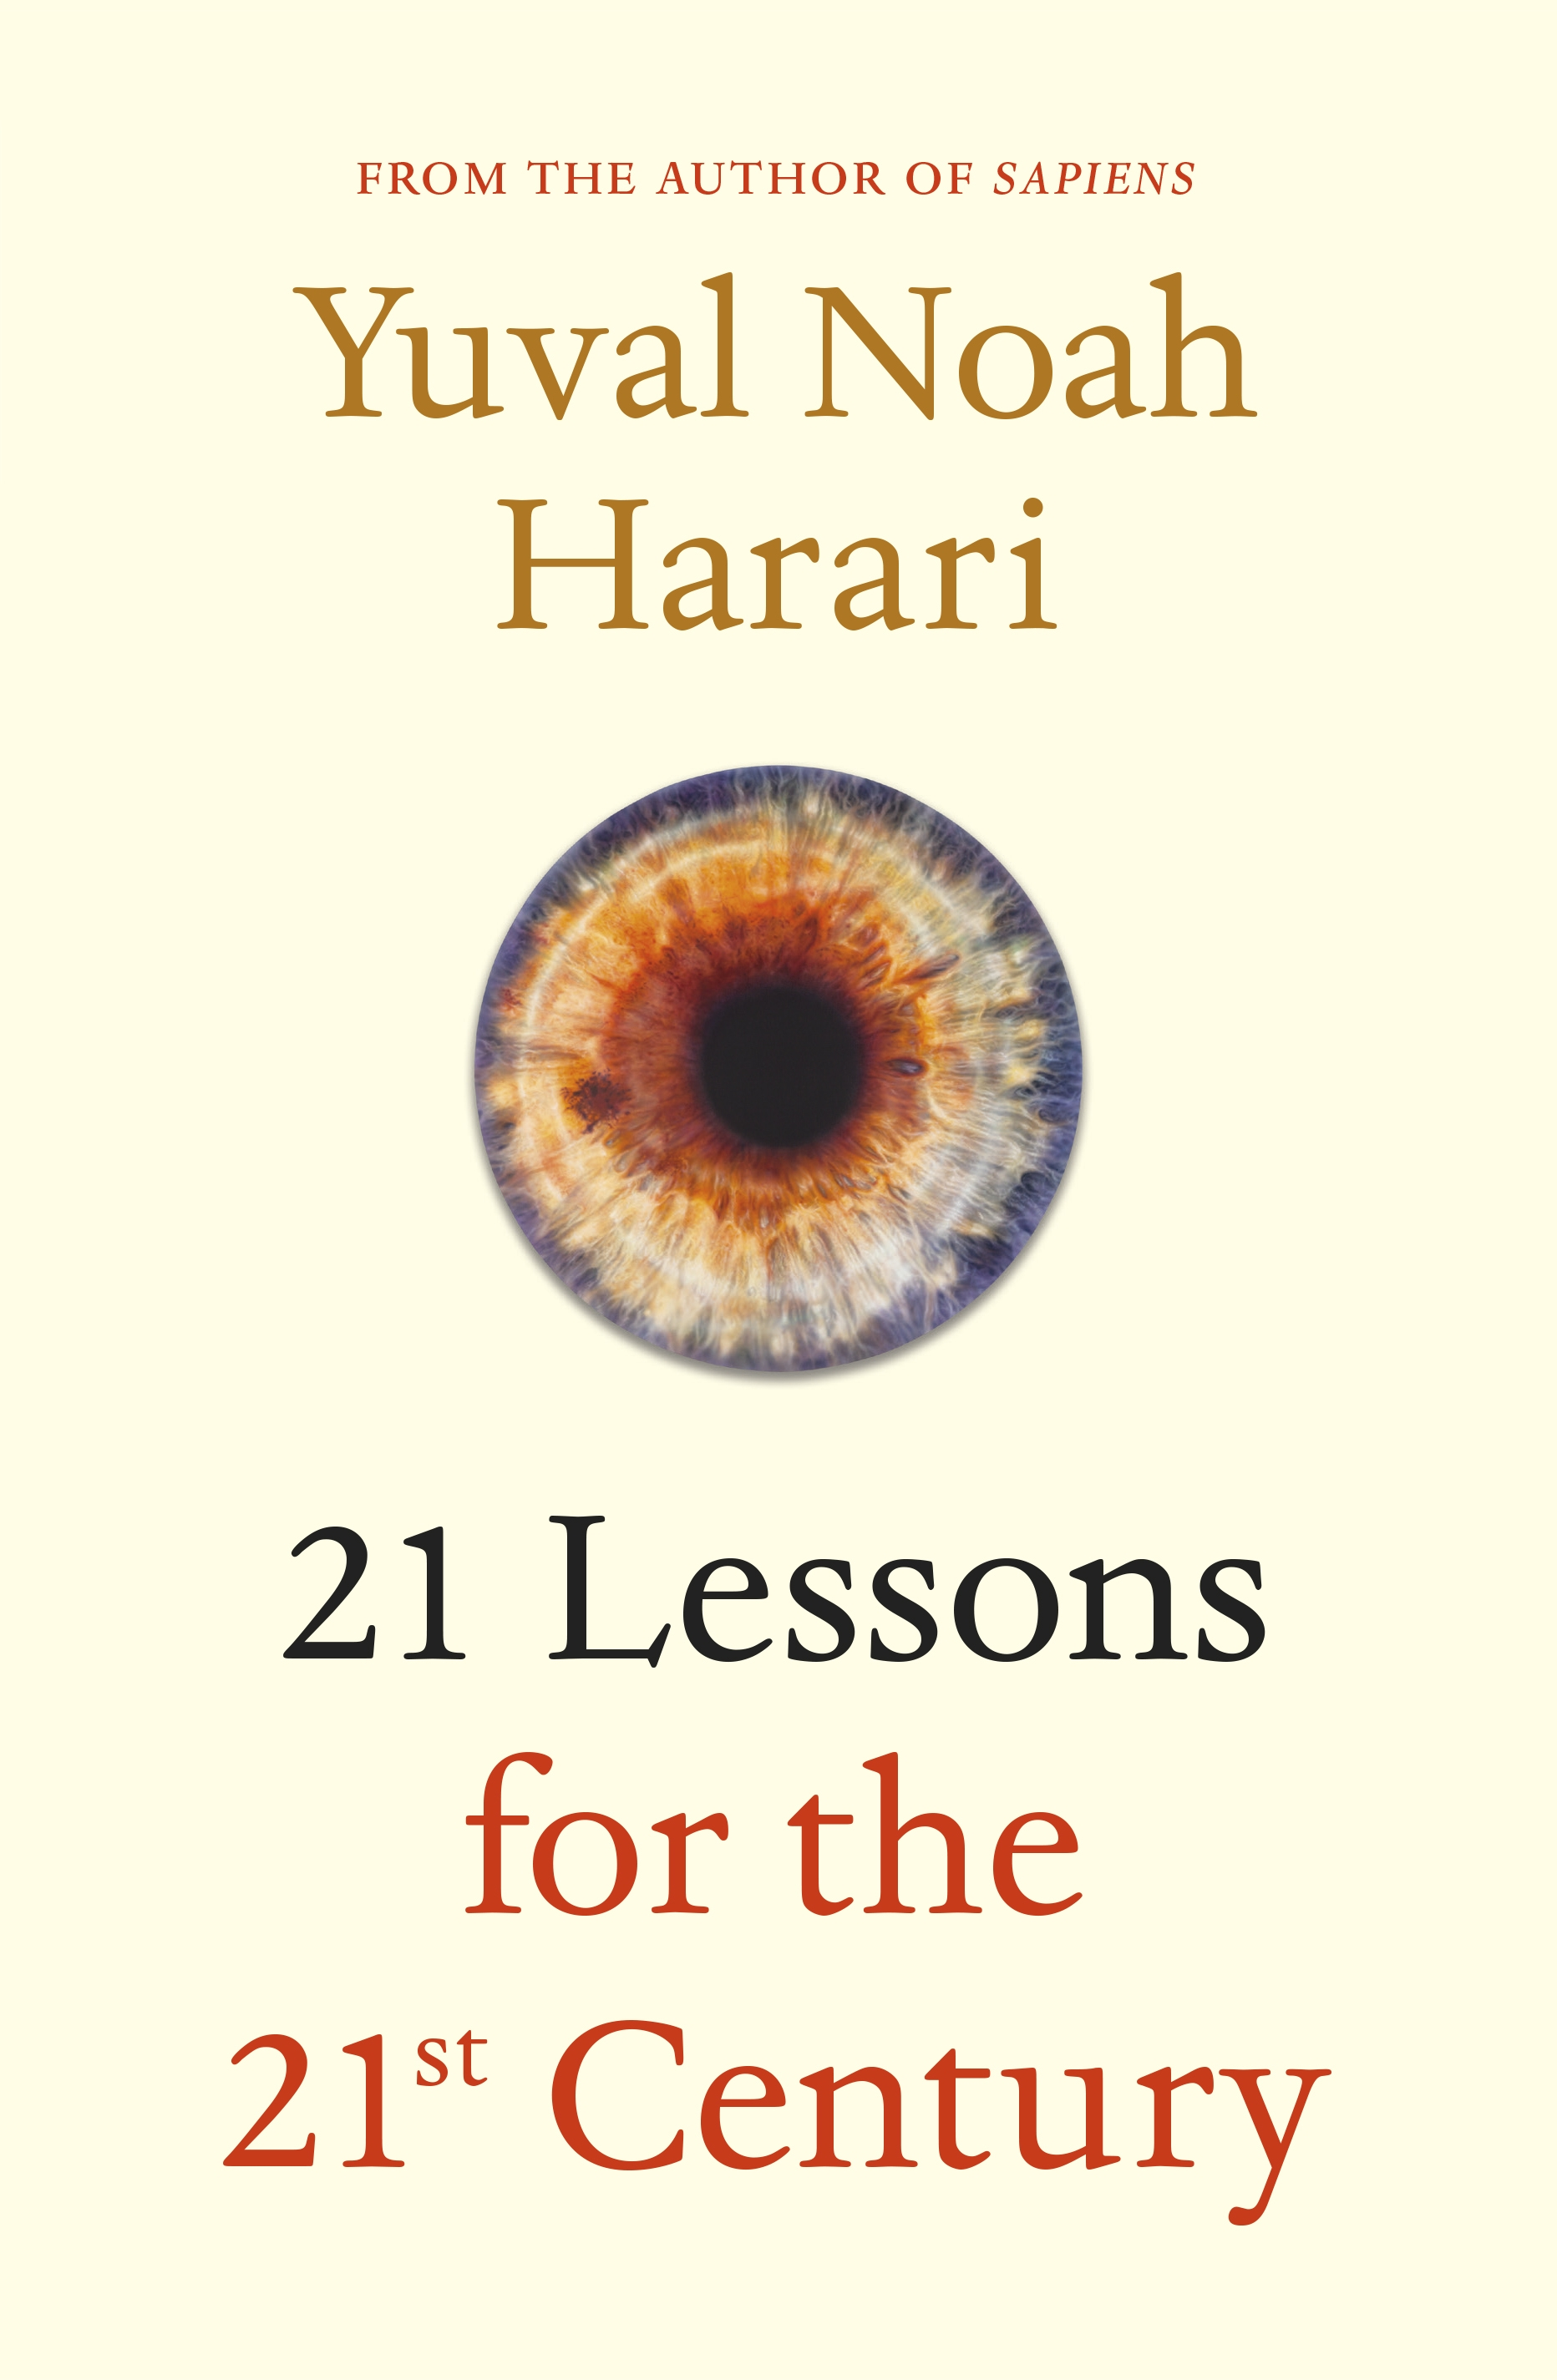 21 Lessons for the 21st Century by Yuval Noah Harari, ISBN: 9781787330672